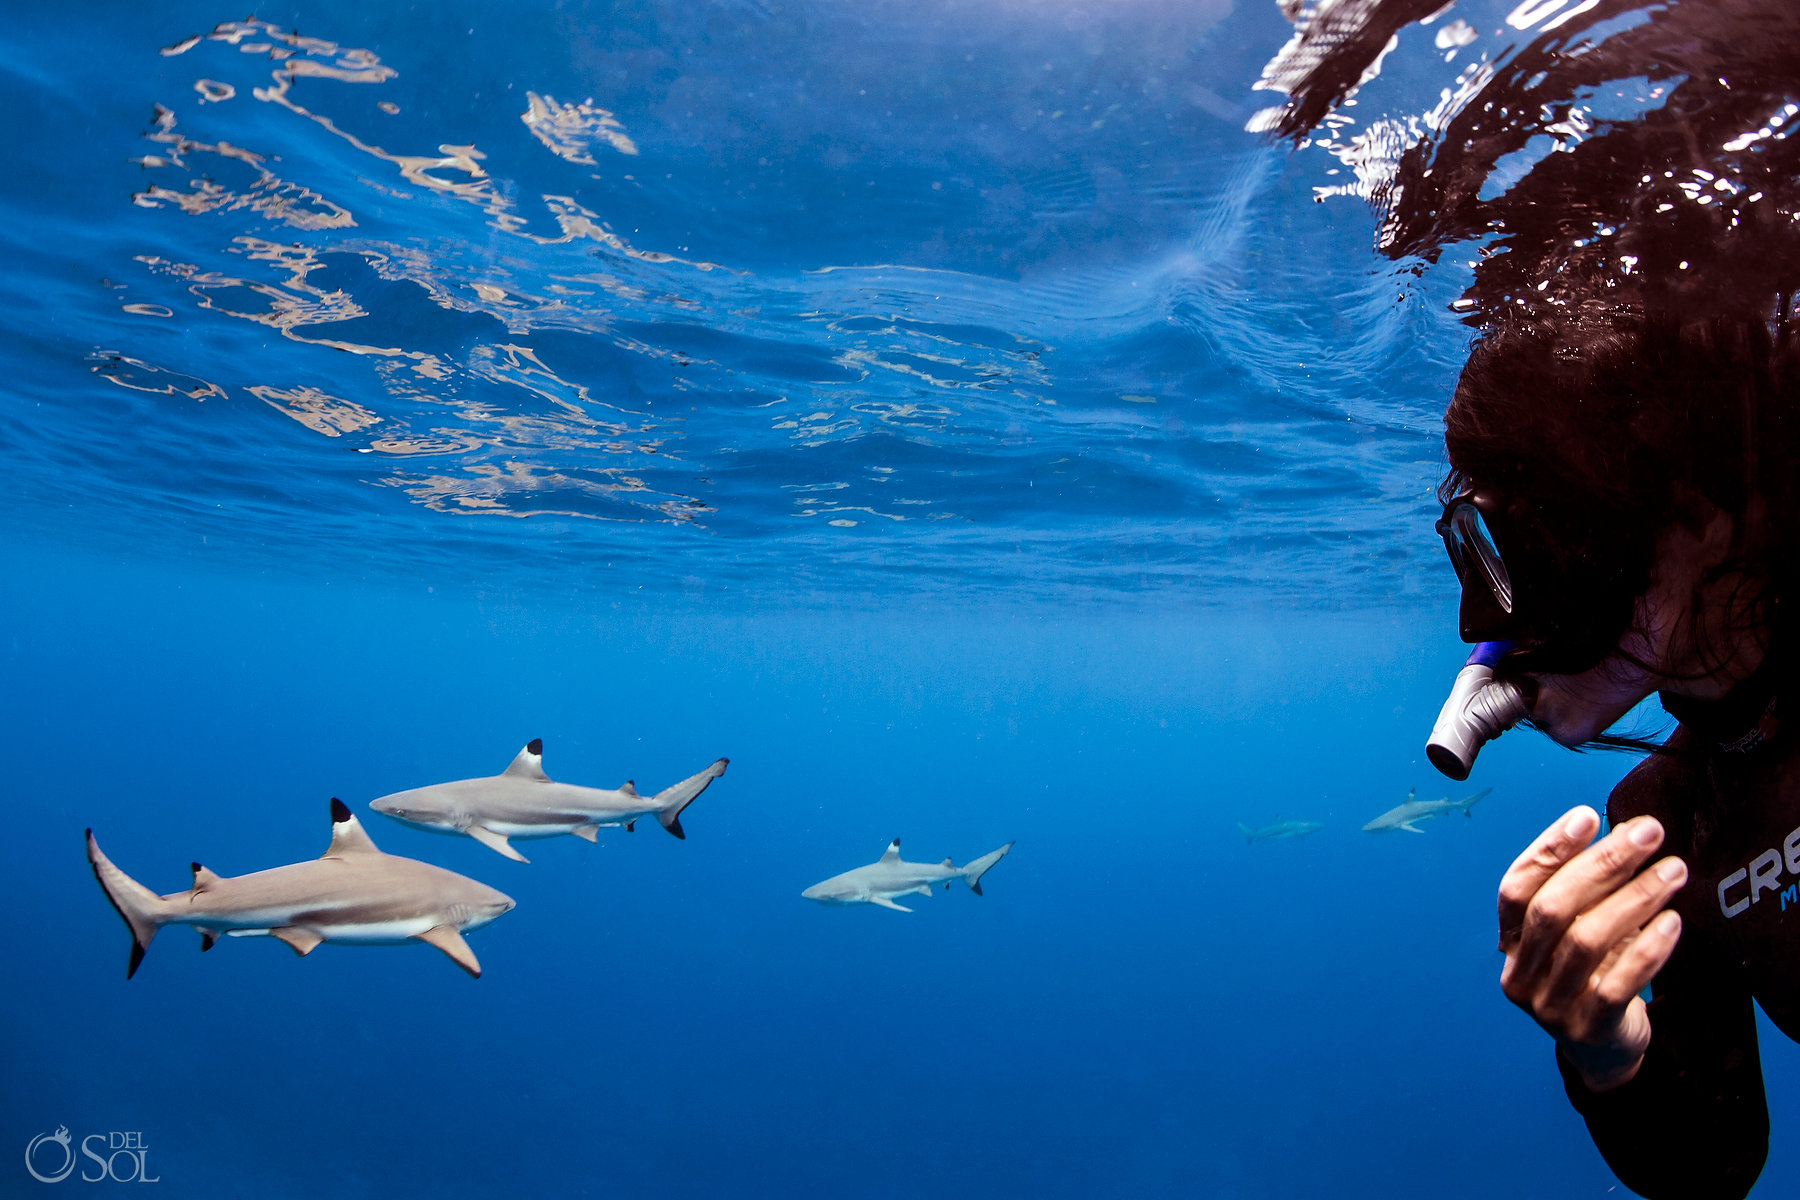 Blacktip Reef Sharks Swimming with Photographer Amazing Blue Scene Reflection Freediver Tahiti underwater photography